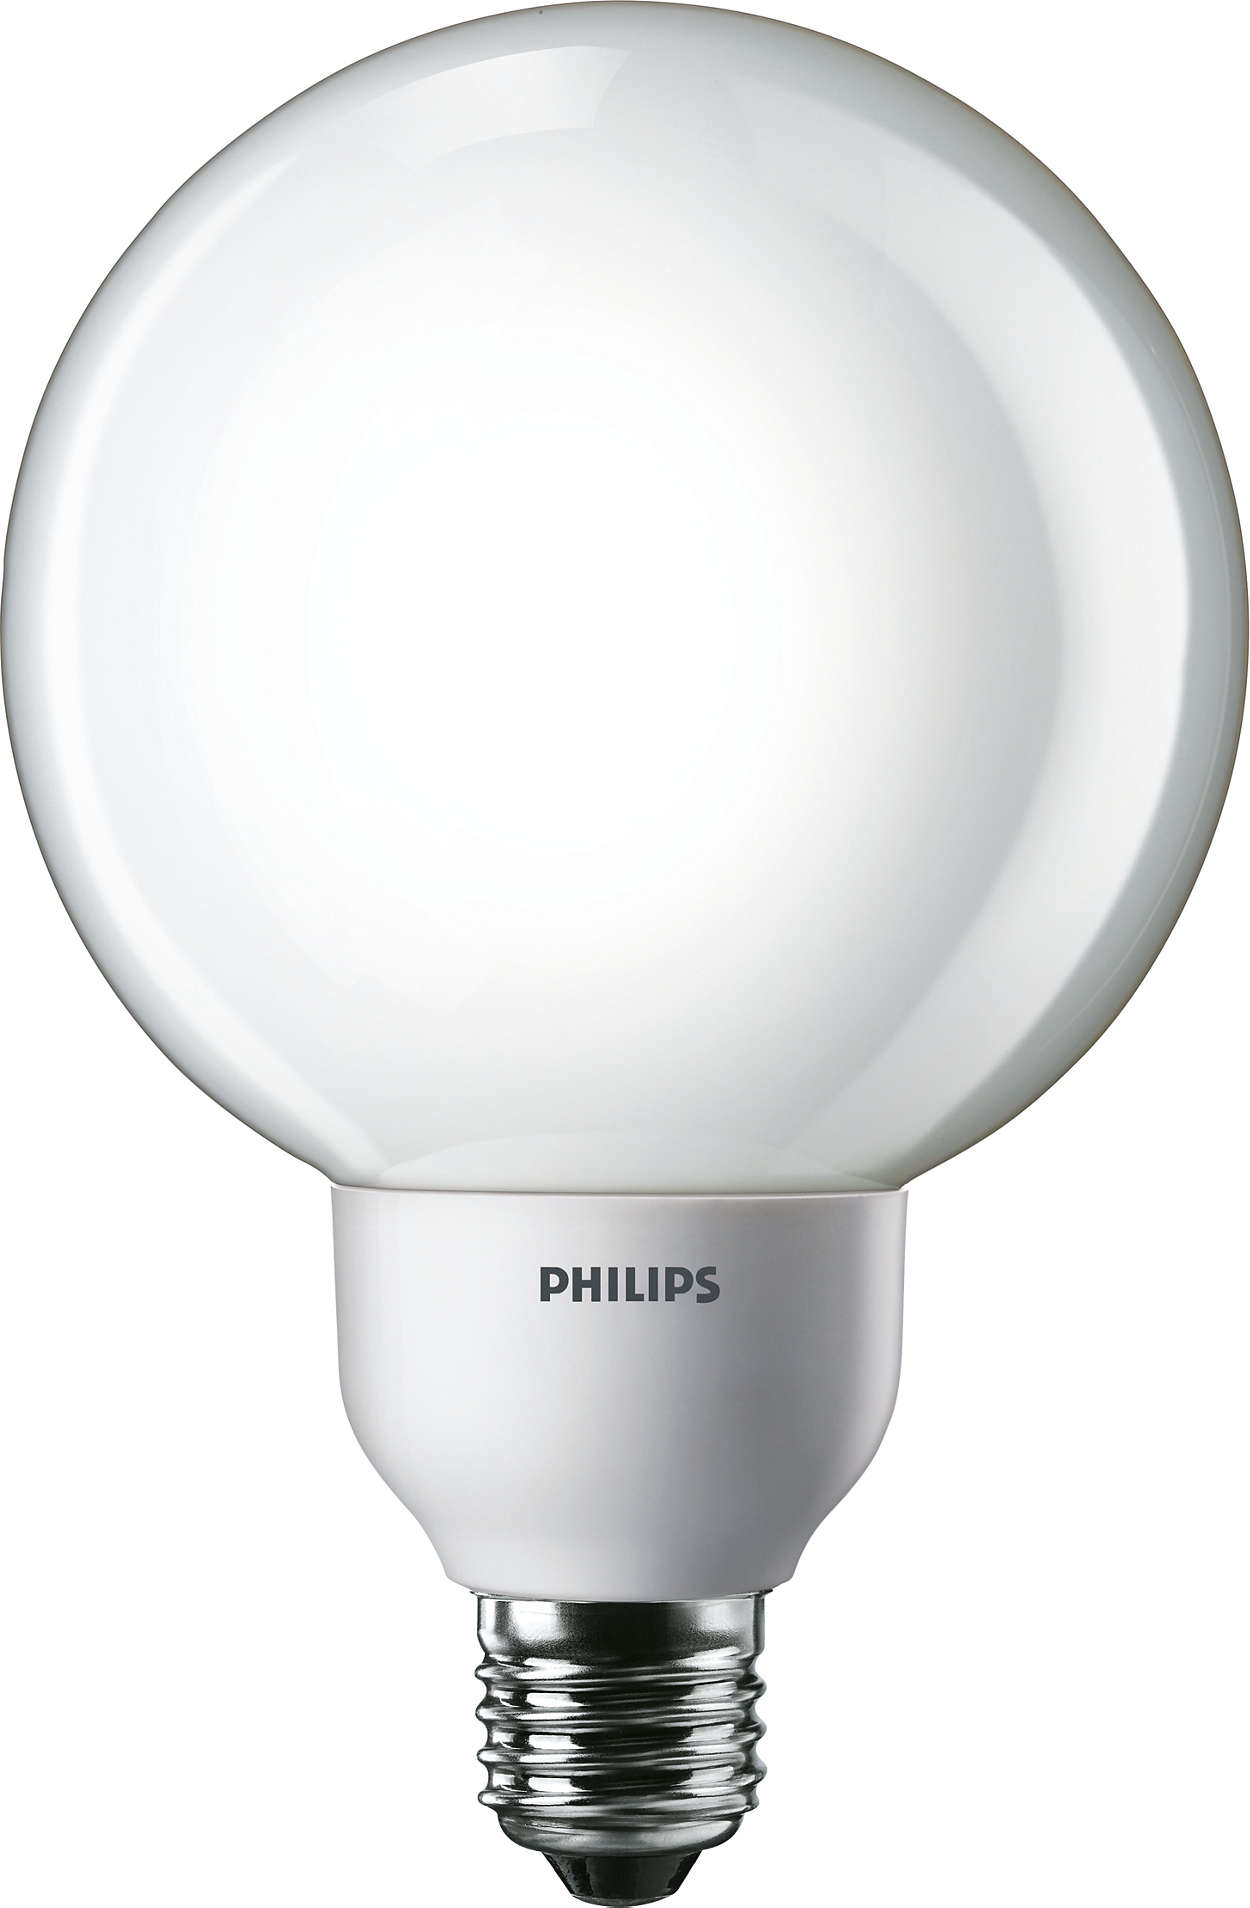 Energy saving lamp in decorative Globe shape